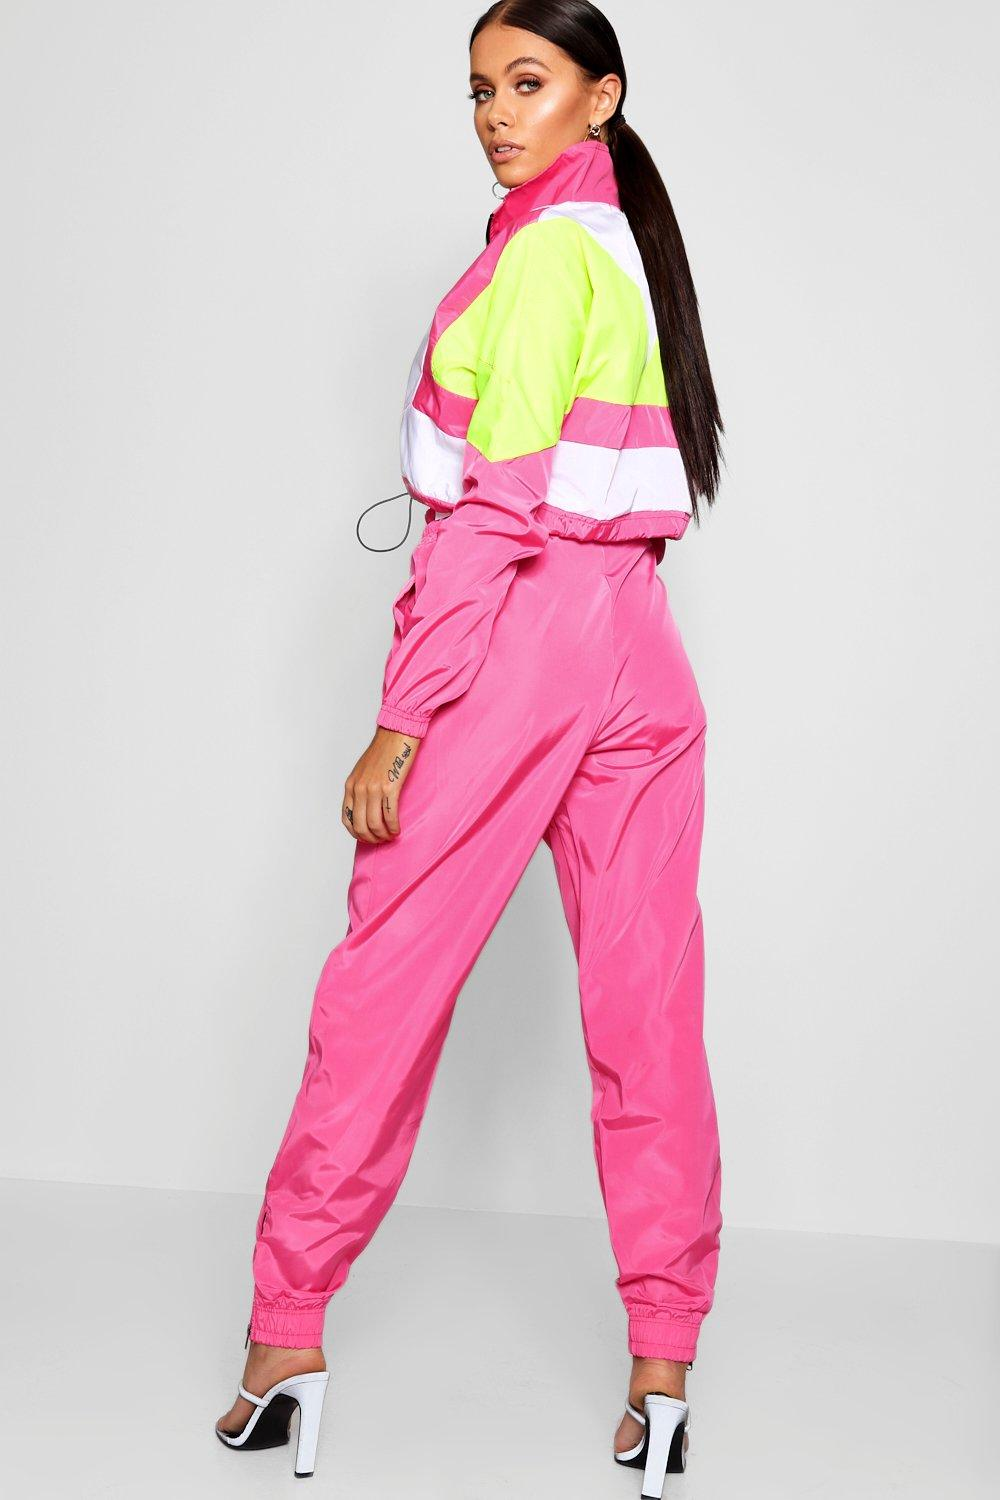 Suit pink hot Jogger Shell hot Jogger Jogger pink Shell hot Suit Suit Shell Rw0AIAYHq